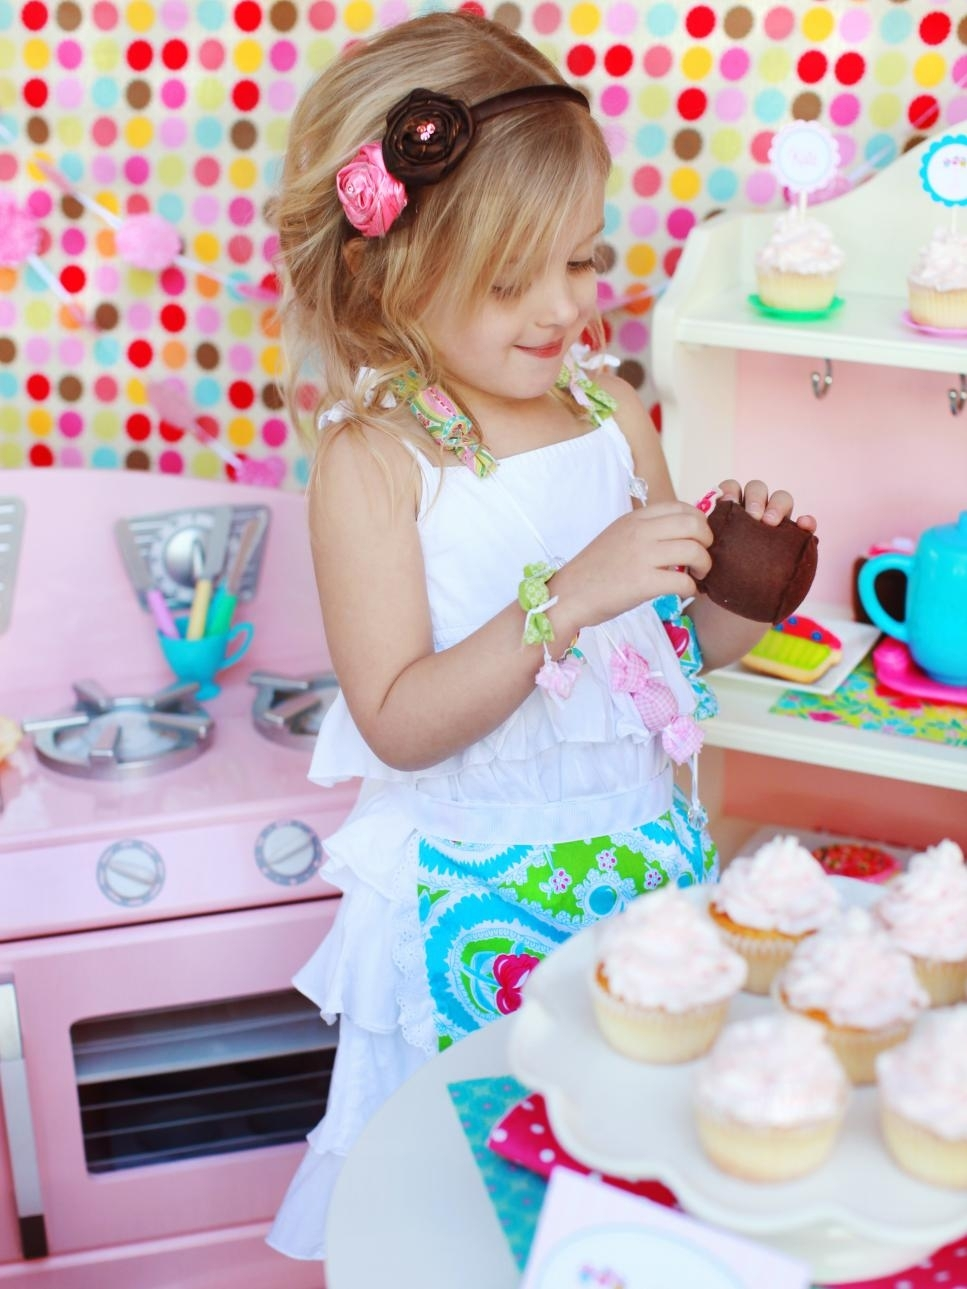 10 Fashionable 5Th Birthday Party Ideas For Girls %name 2020